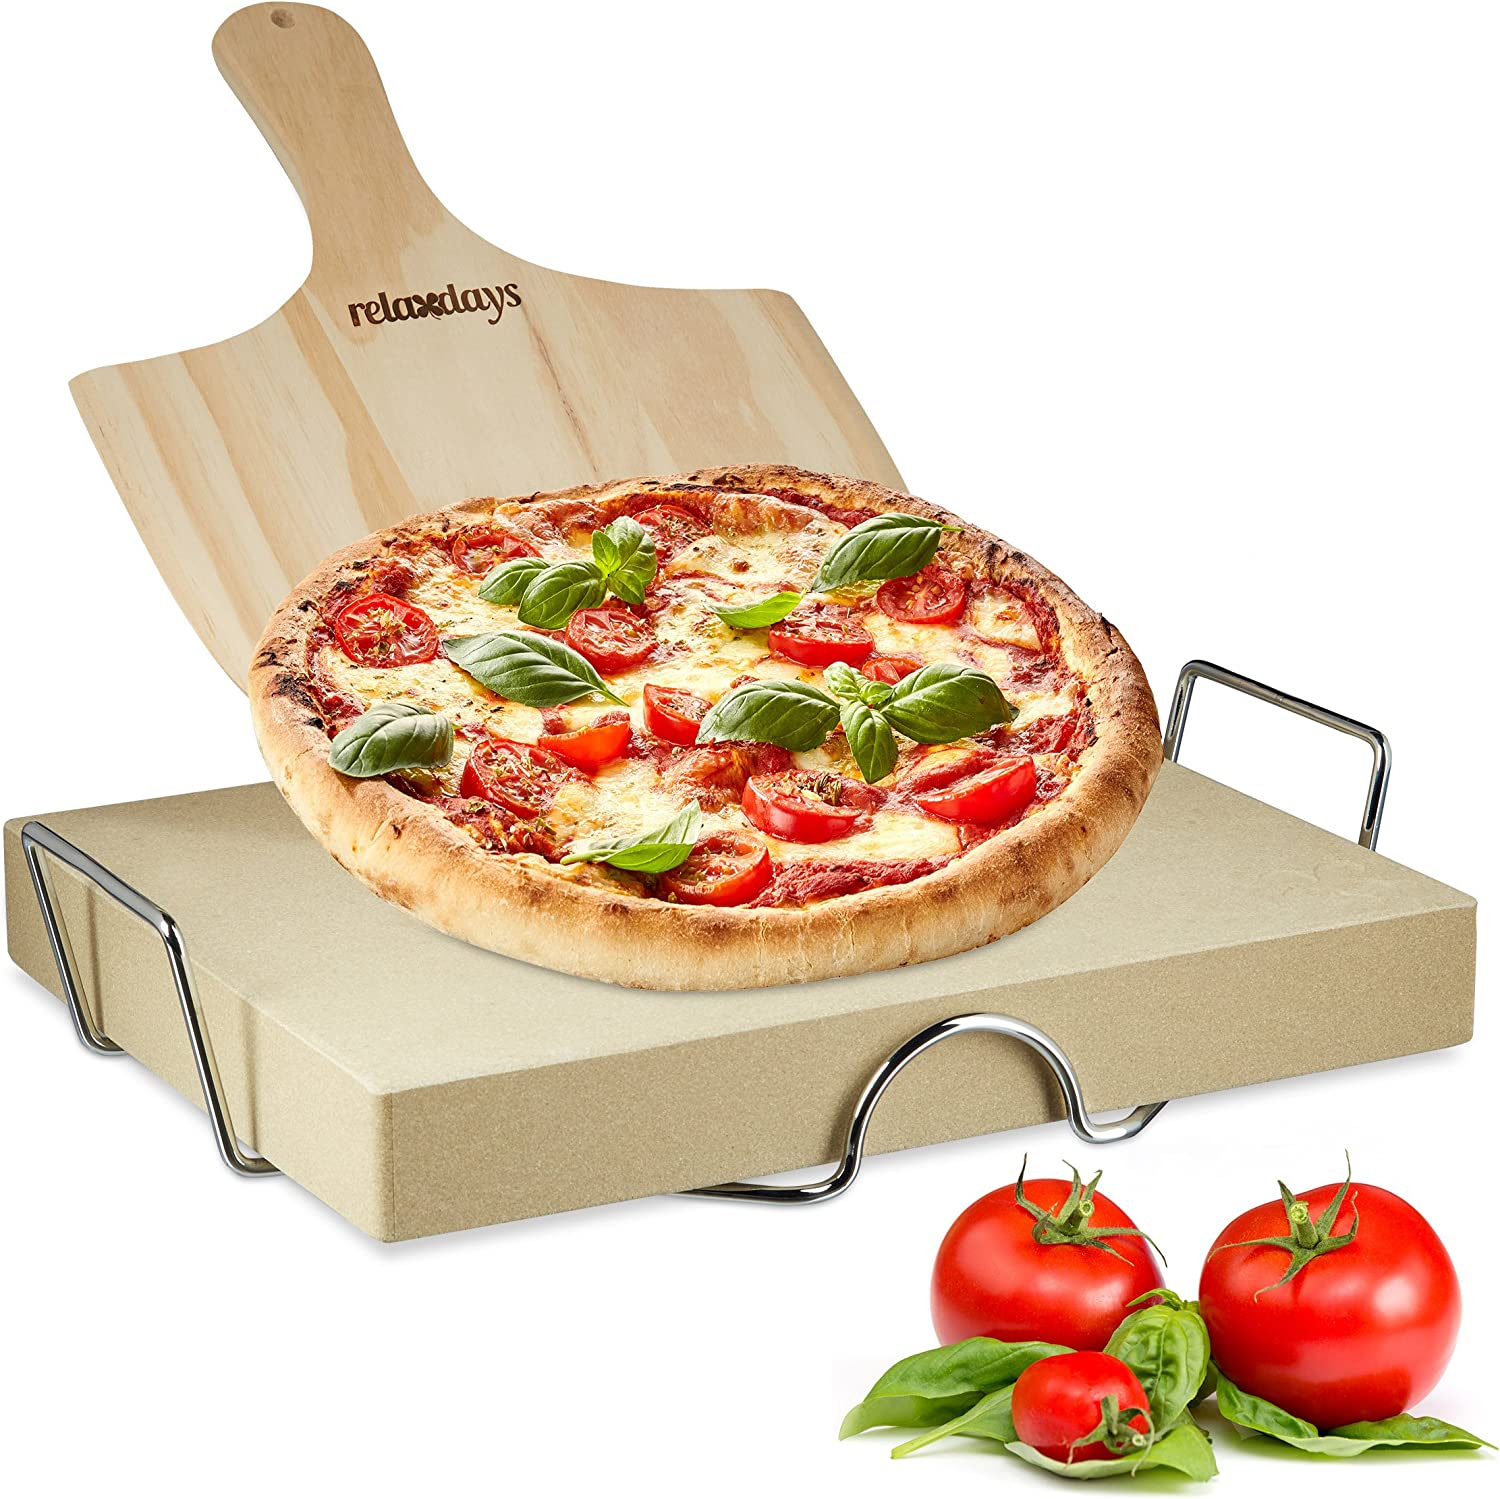 Relaxdays Set 5 cm Thick w/Metal Holder Peel Made of Wood, Size: 7 x 43 x 31.5 cm Rectangular Bread Baking Stone Tarte Flambees w/Pizza Pusher for Ovens, Natural, 31.5 x 43 x 7.cm, Beige